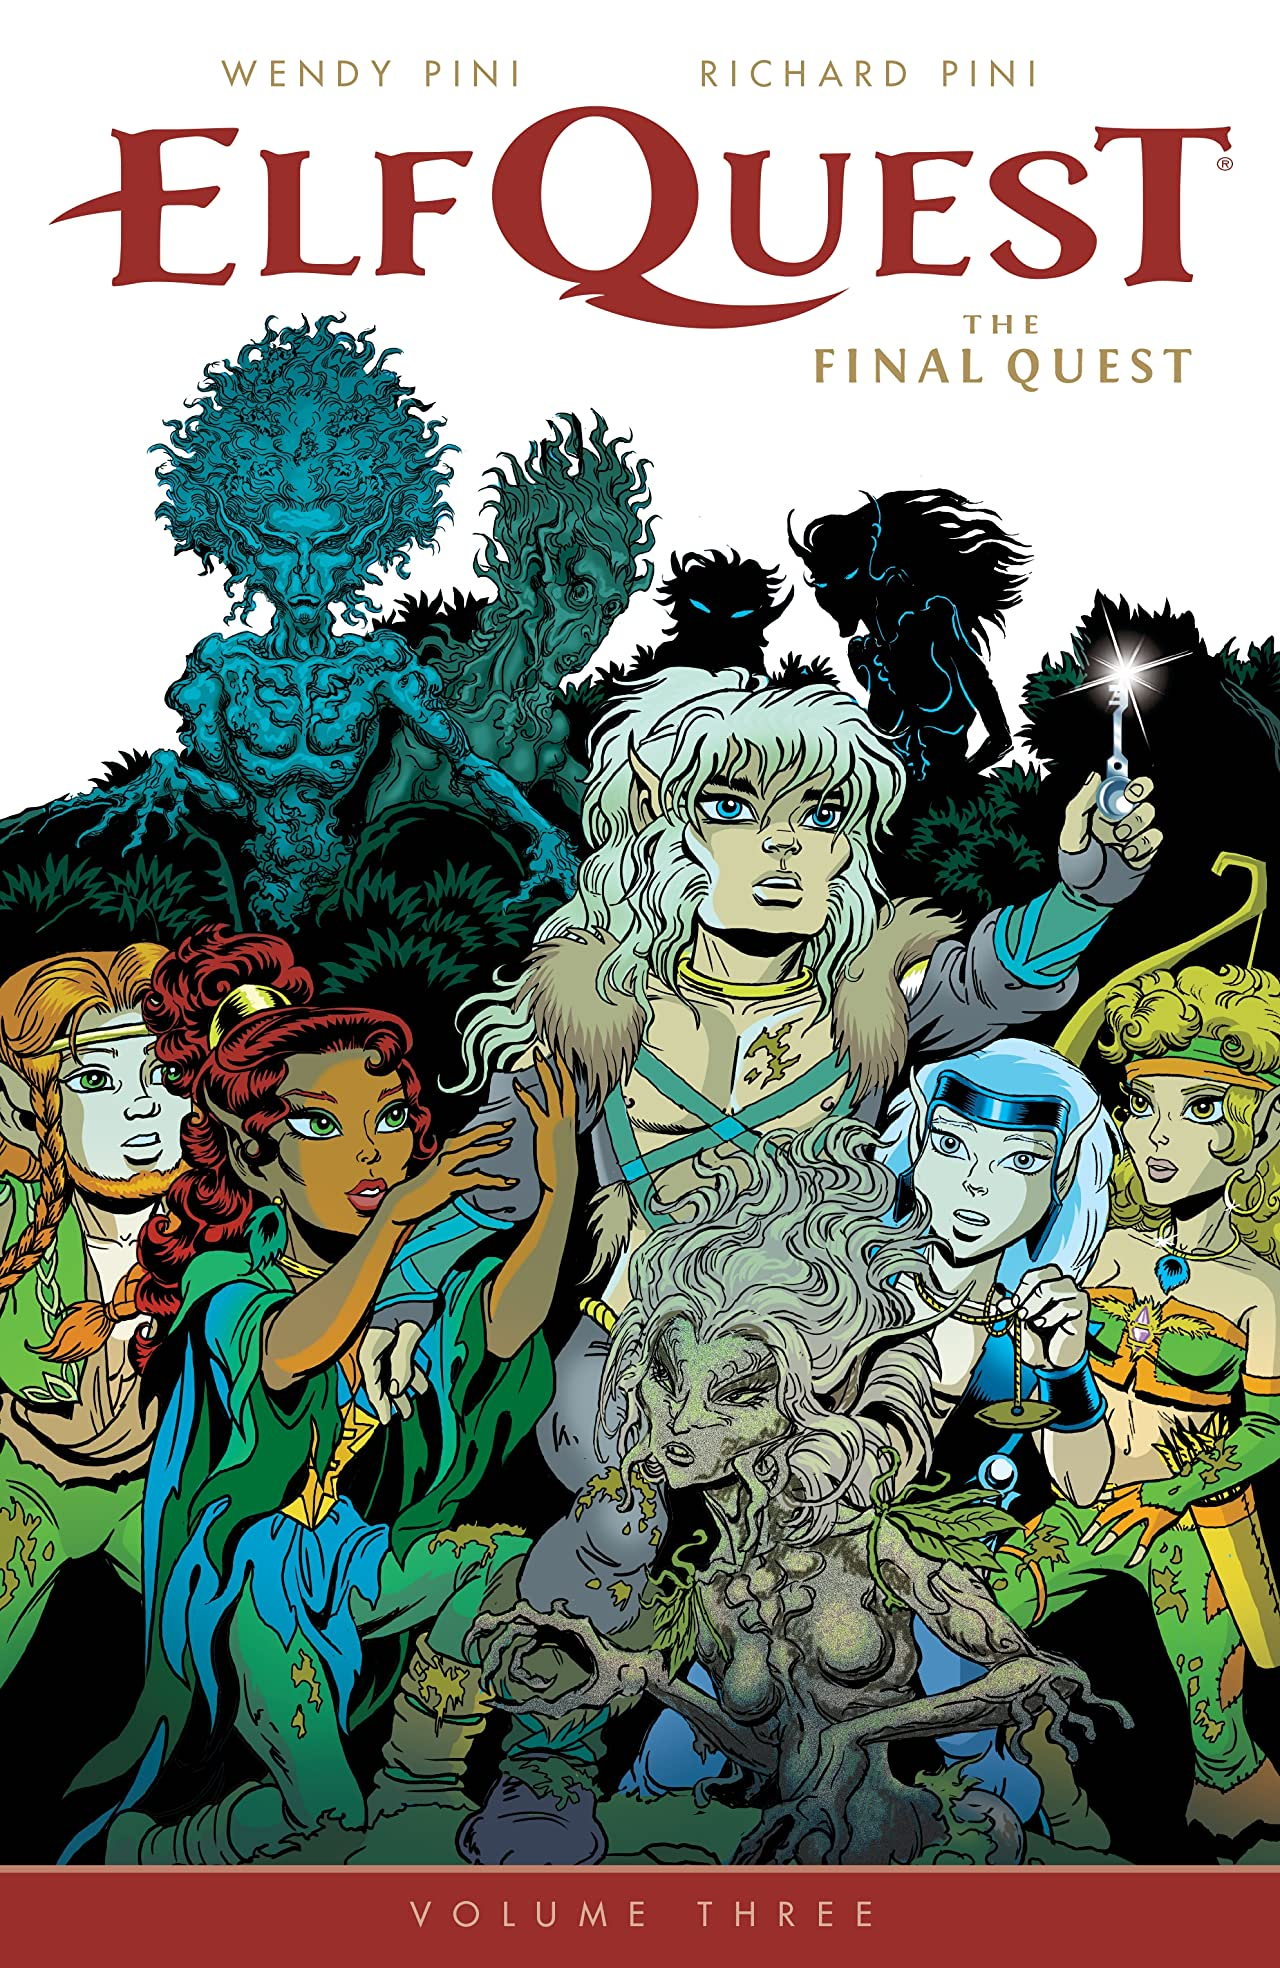 ElfQuest: The Final Quest Vol. 3